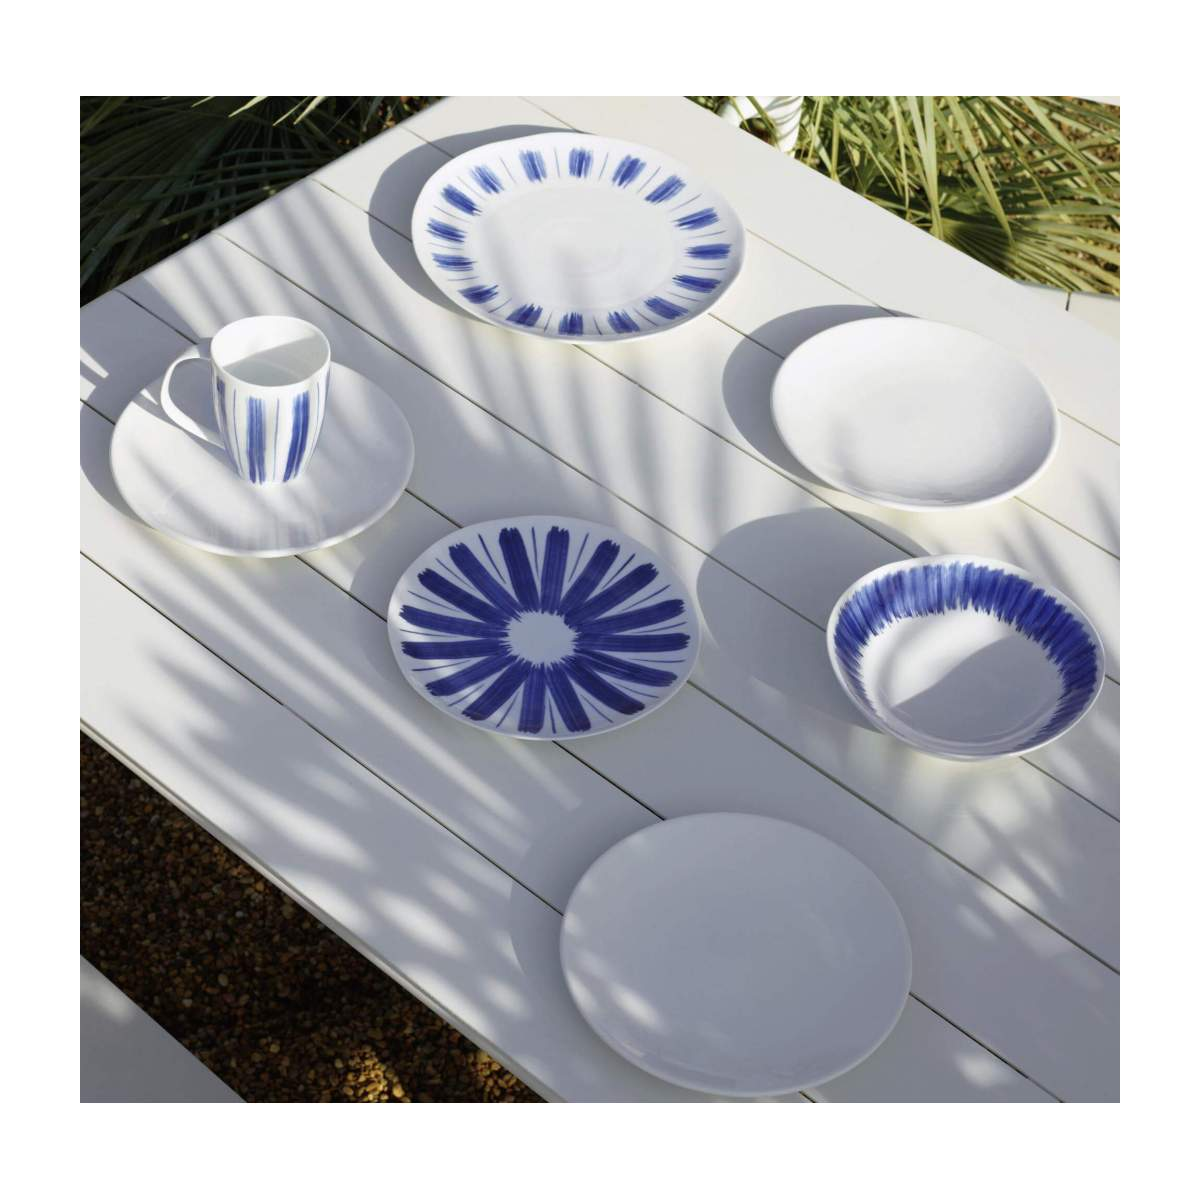 Flat plate made of porcelain, white and blue n°7